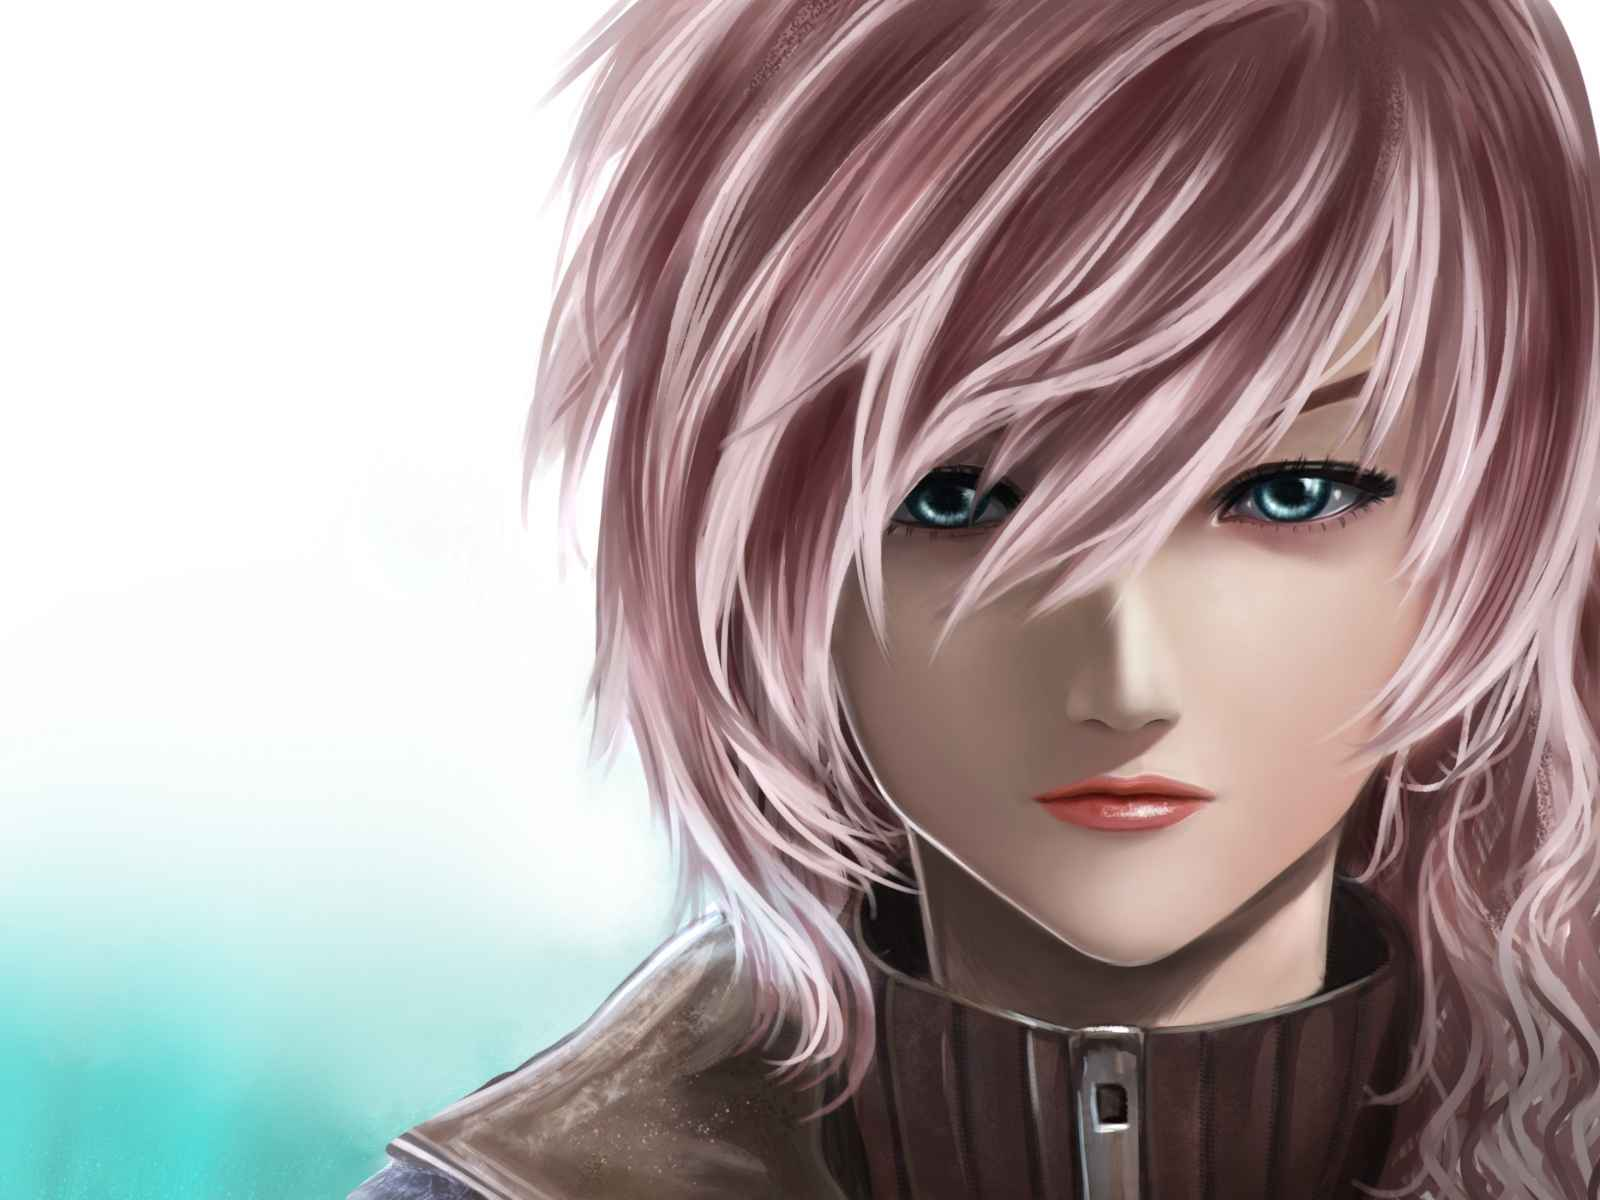 Final fantasy xiii, Girl, Face, Art 1600×1200 HD Background